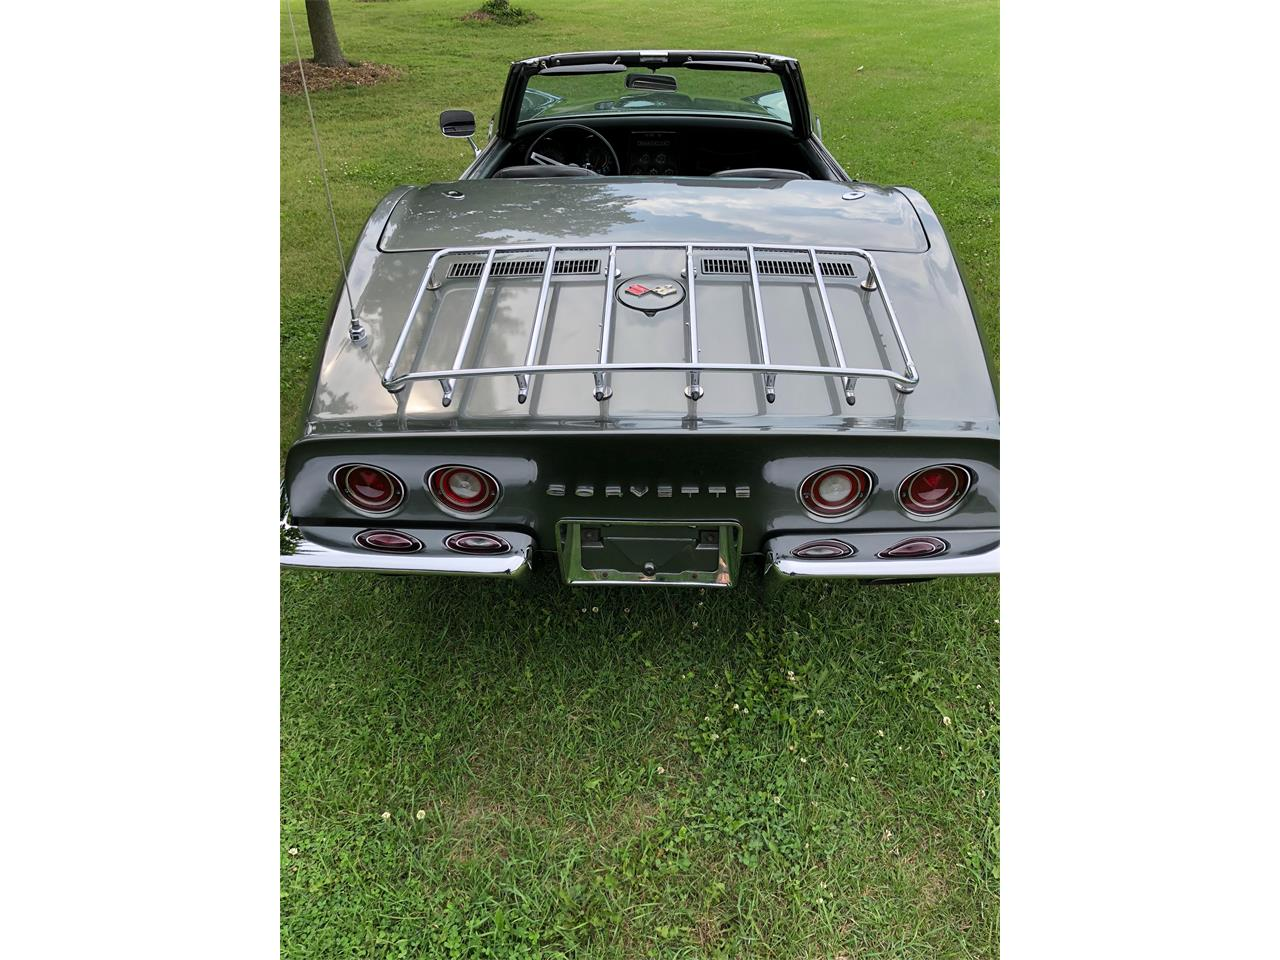 Large Picture of 1970 Corvette located in Toronto Ontario - $40,000.00 Offered by a Private Seller - OEDX